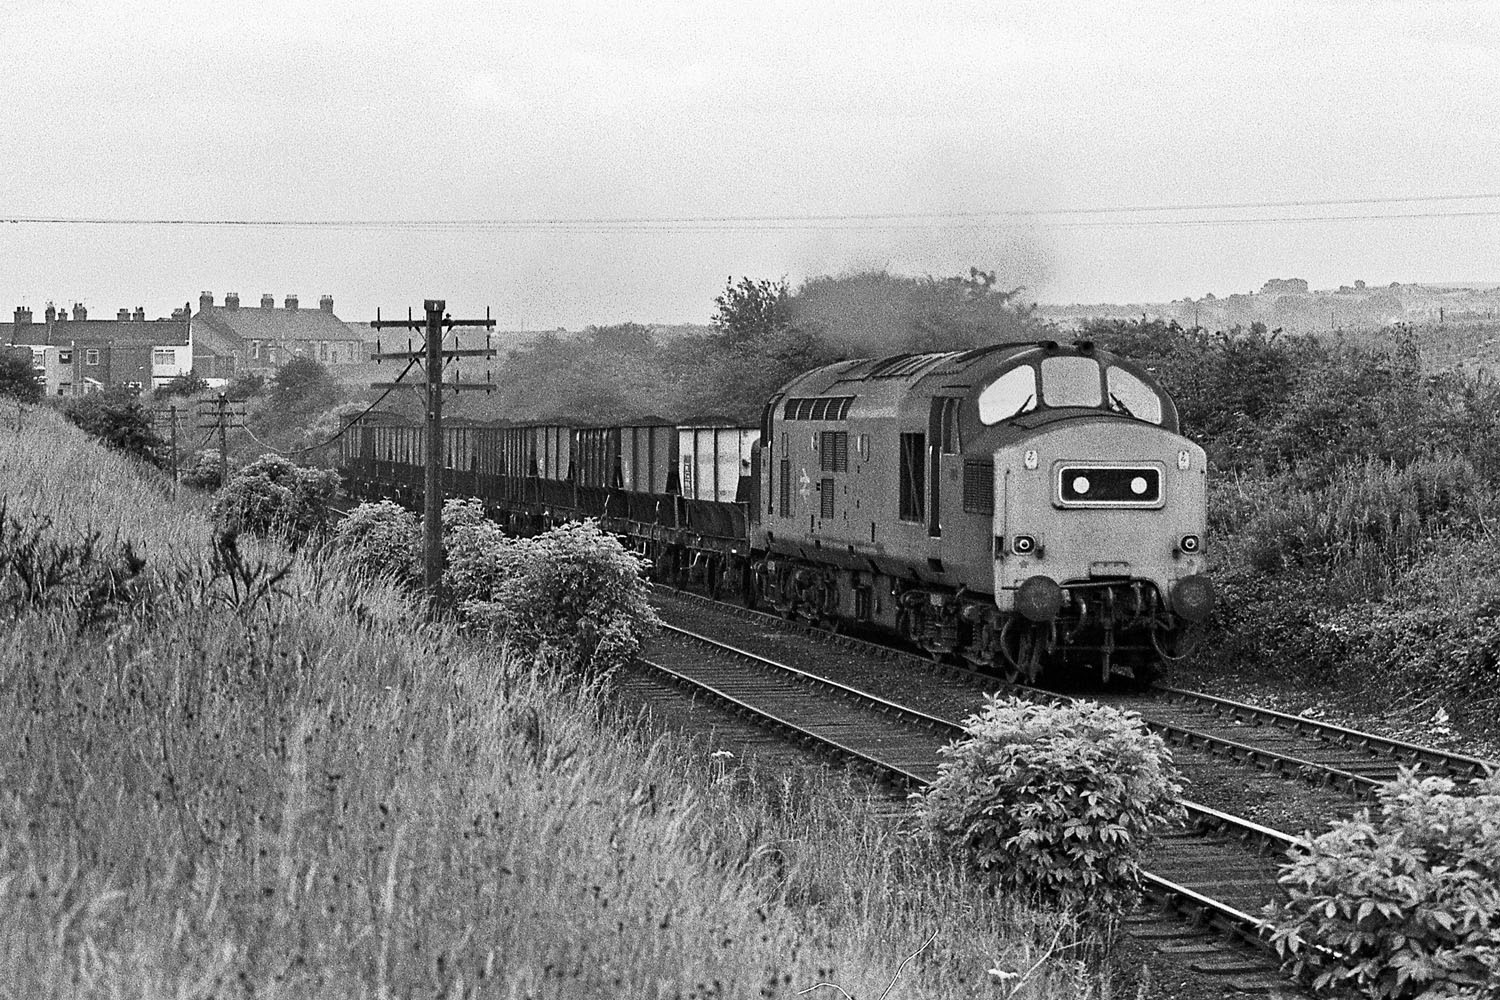 37242 Pelton 1977, coal train